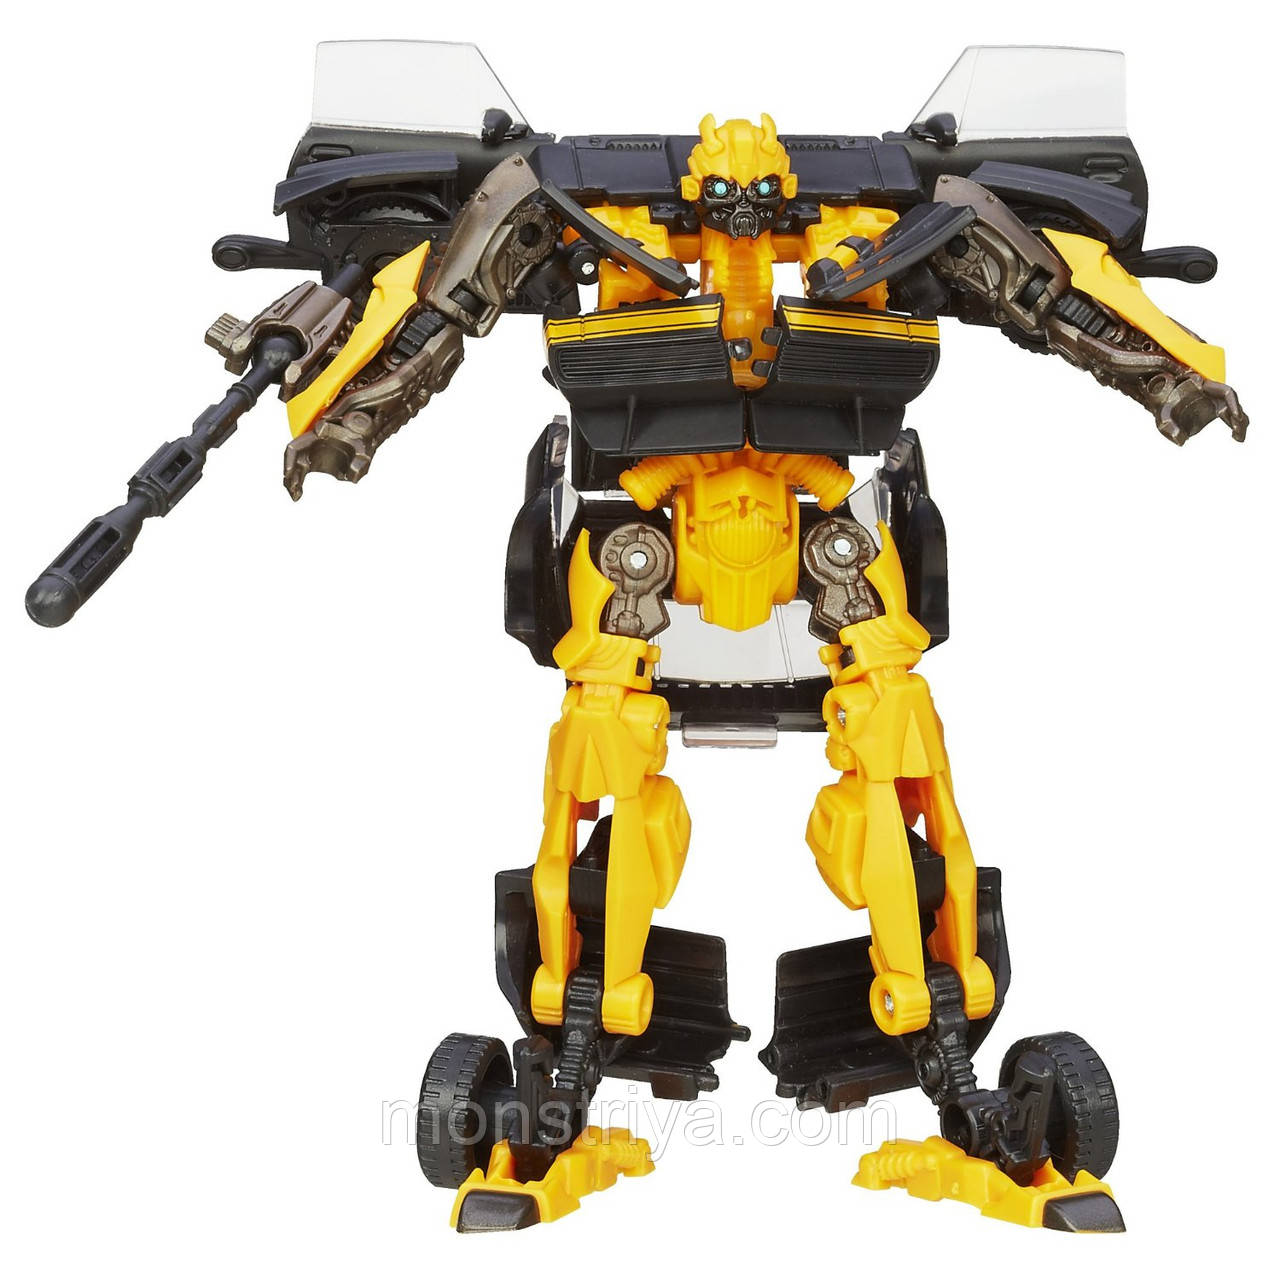 Transformers Age of Extinction Generations Deluxe Class High Octane Bumblebee Бамблби, Киев